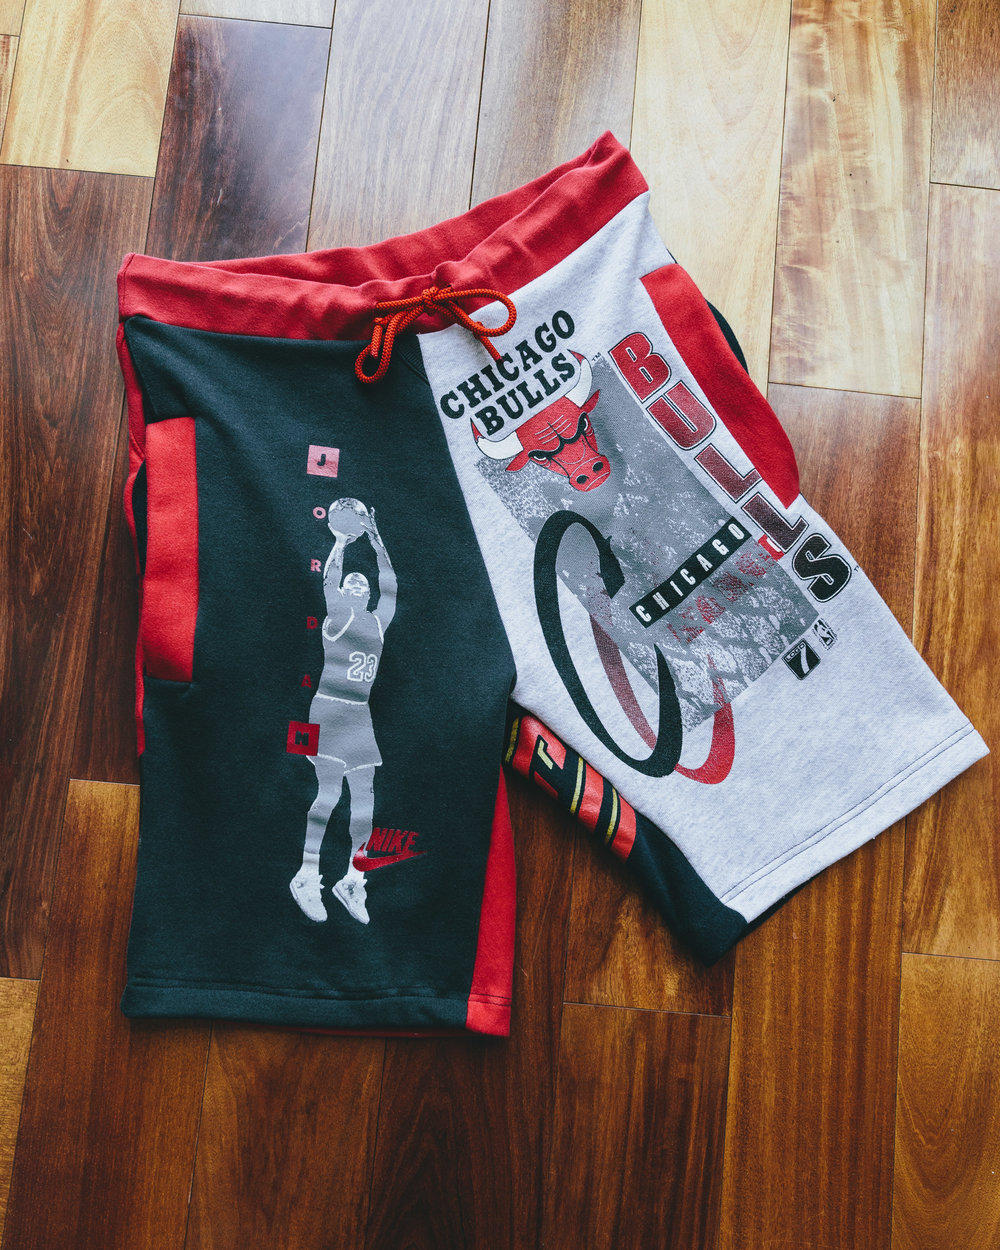 Bulls Shorts - Commissioned piece bulls themed from various vintage crewnecks/hoodies.